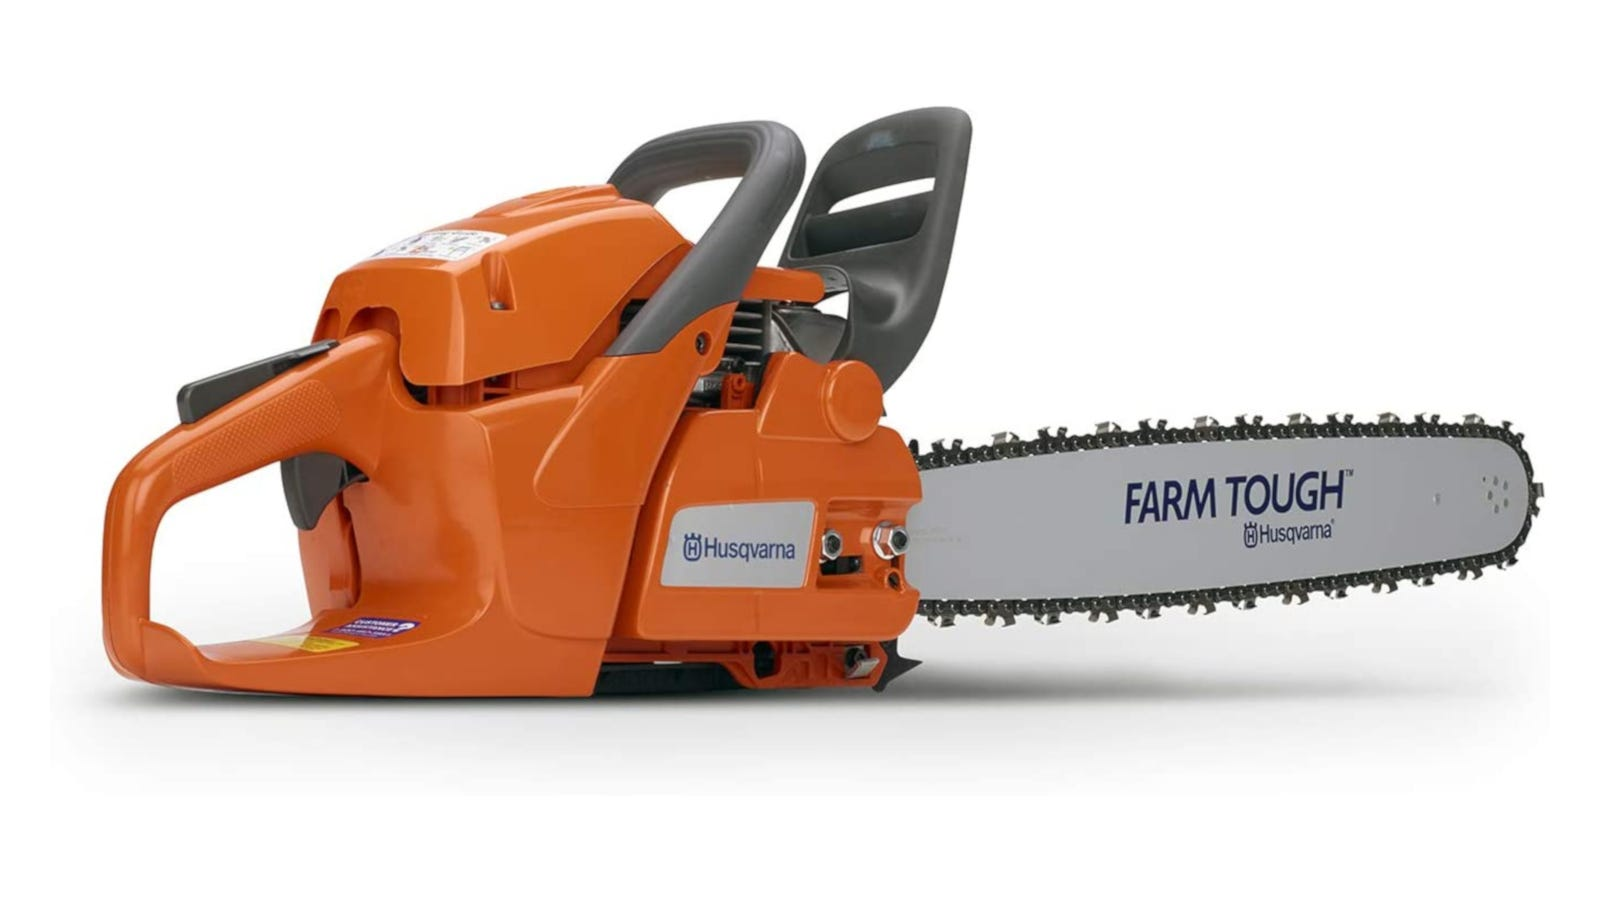 Orange gas chainsaw with 20-inch bar, 2-cycle engine, and side-mounted chain tensioning system